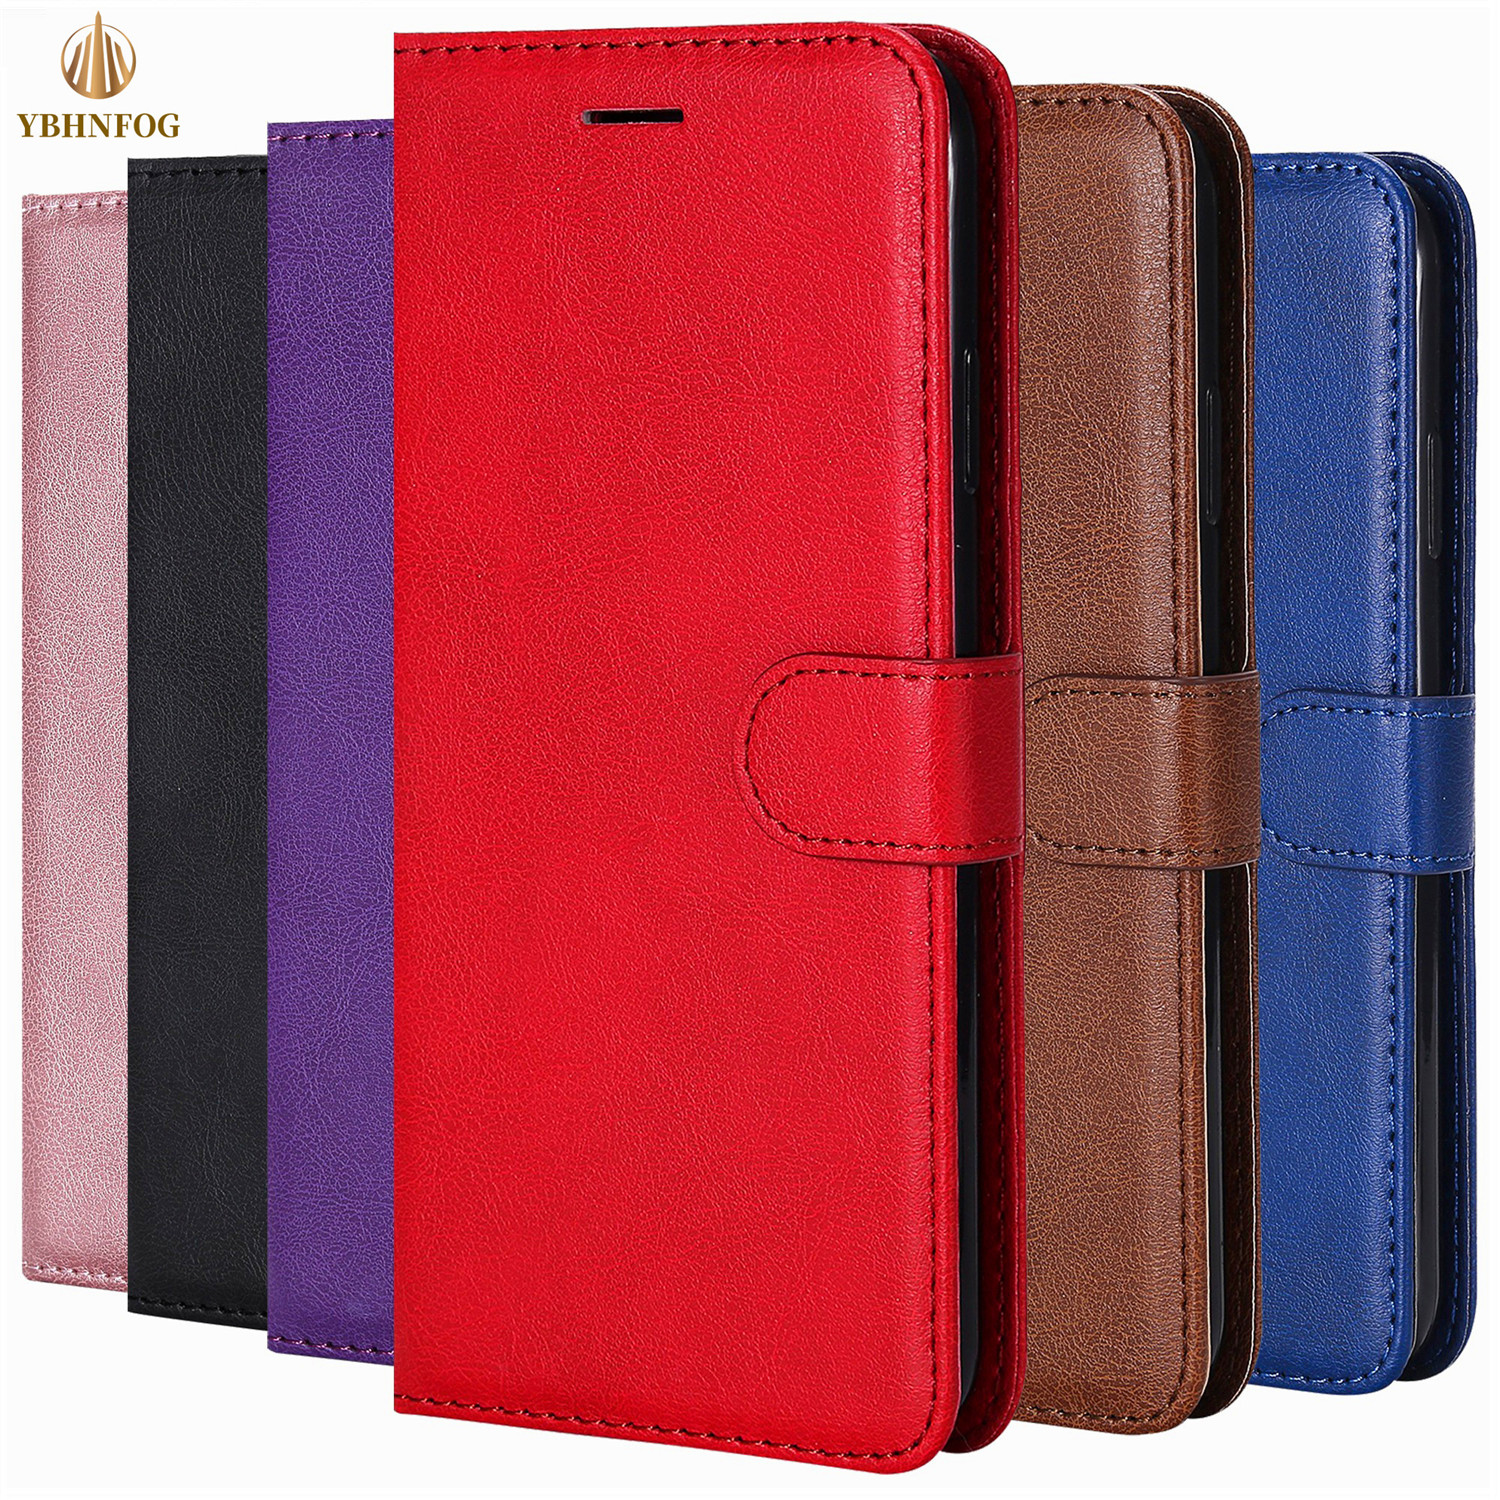 Luxe Eenvoud Leather Wallet Case Voor Iphone 11 Pro X Xs Max Xr 6 6S 7 8 Plus 5 5S Se Houder Kaartsleuven Flip Cover Stand Bag